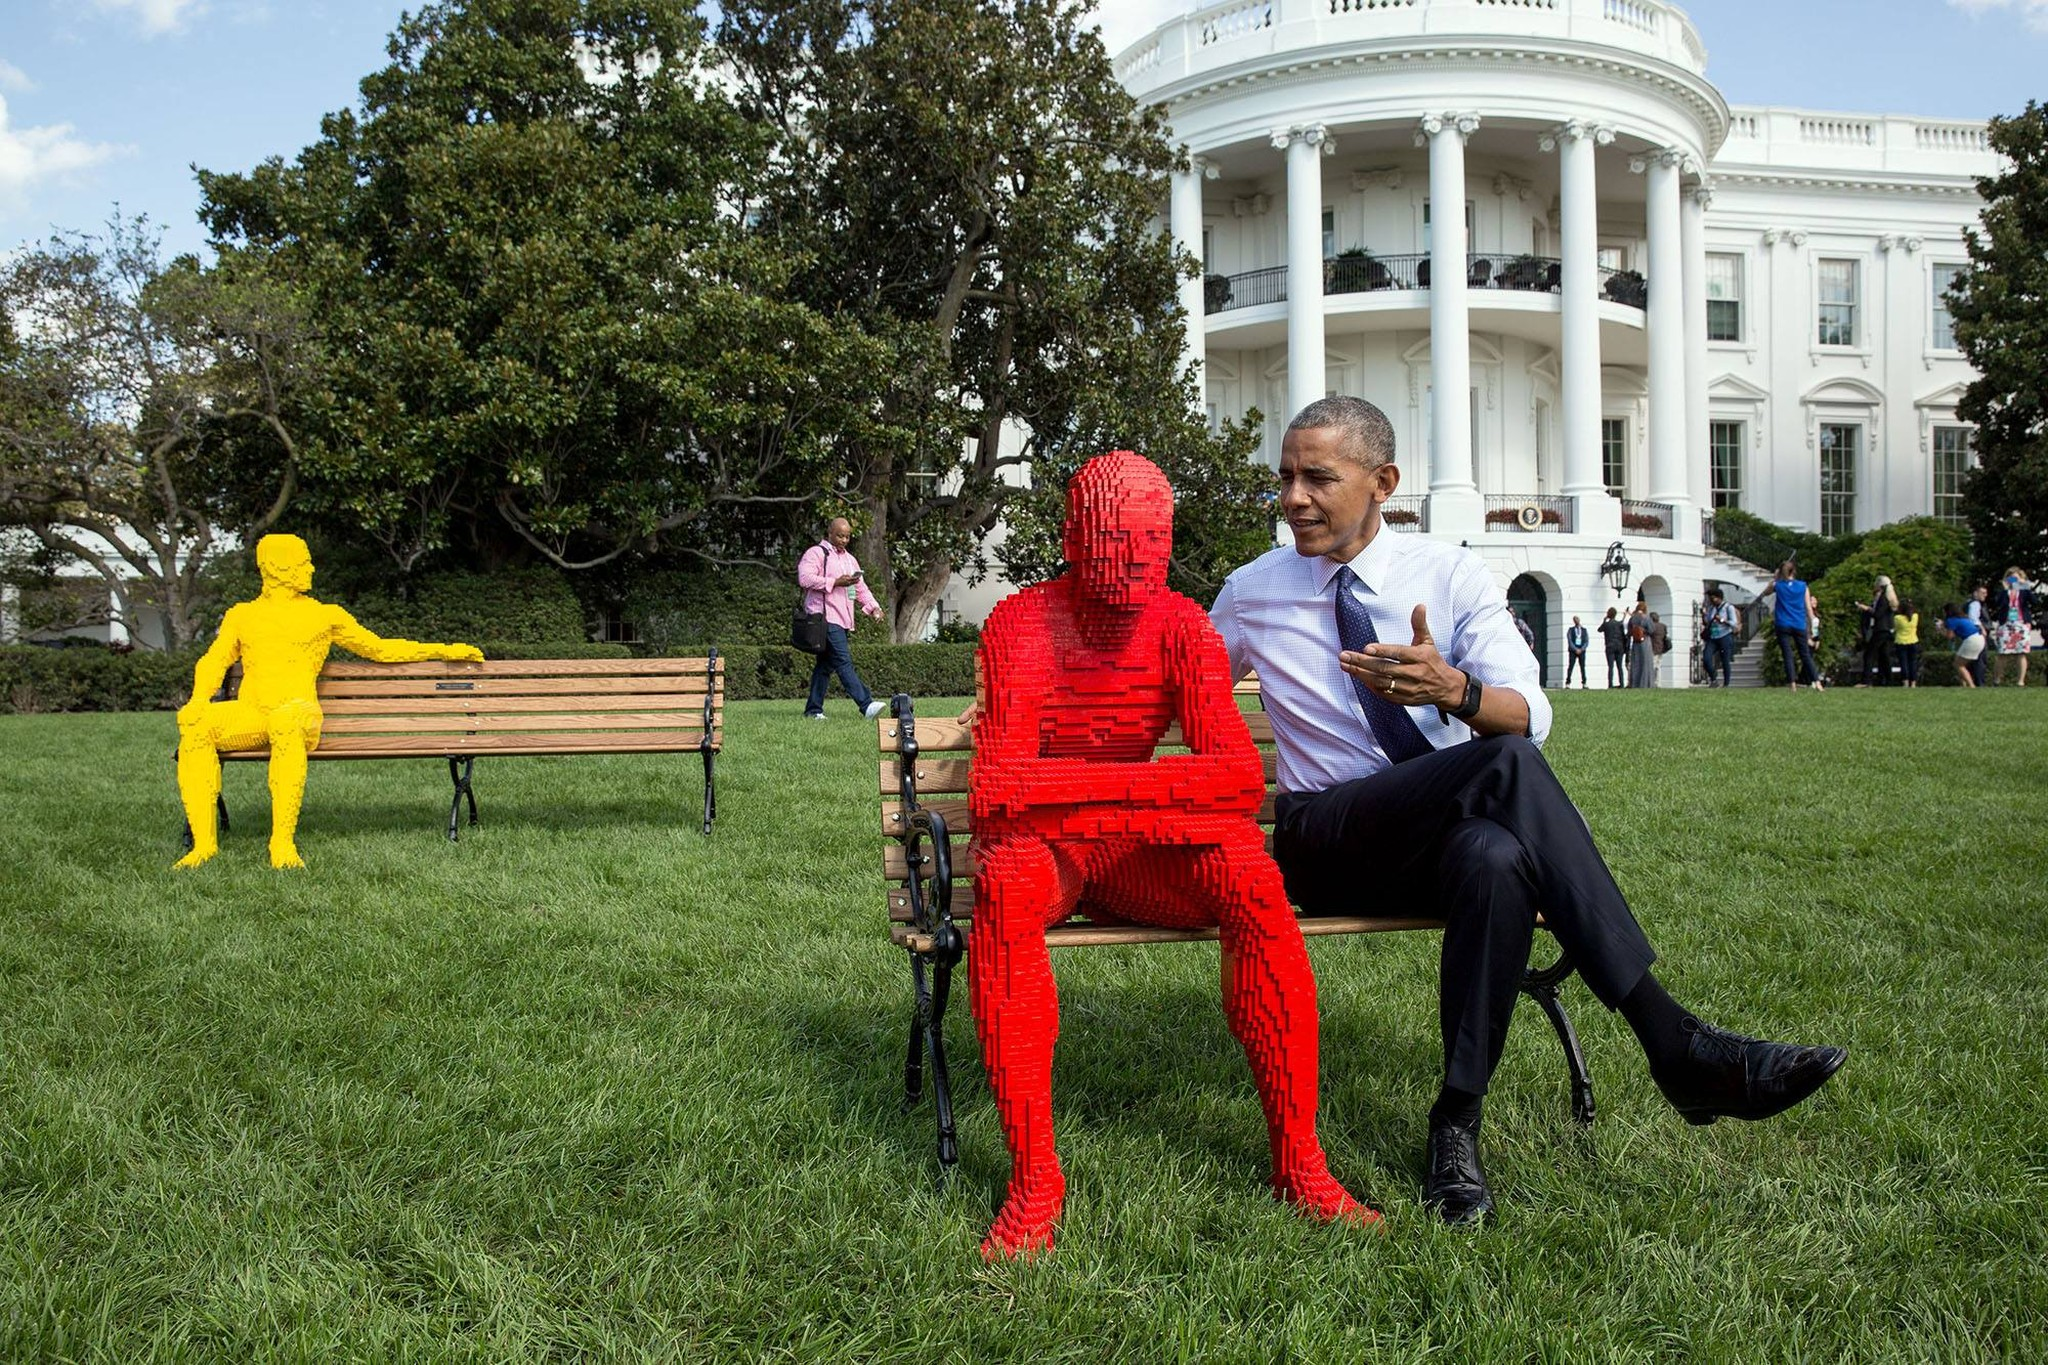 Barack Obama with Lego man